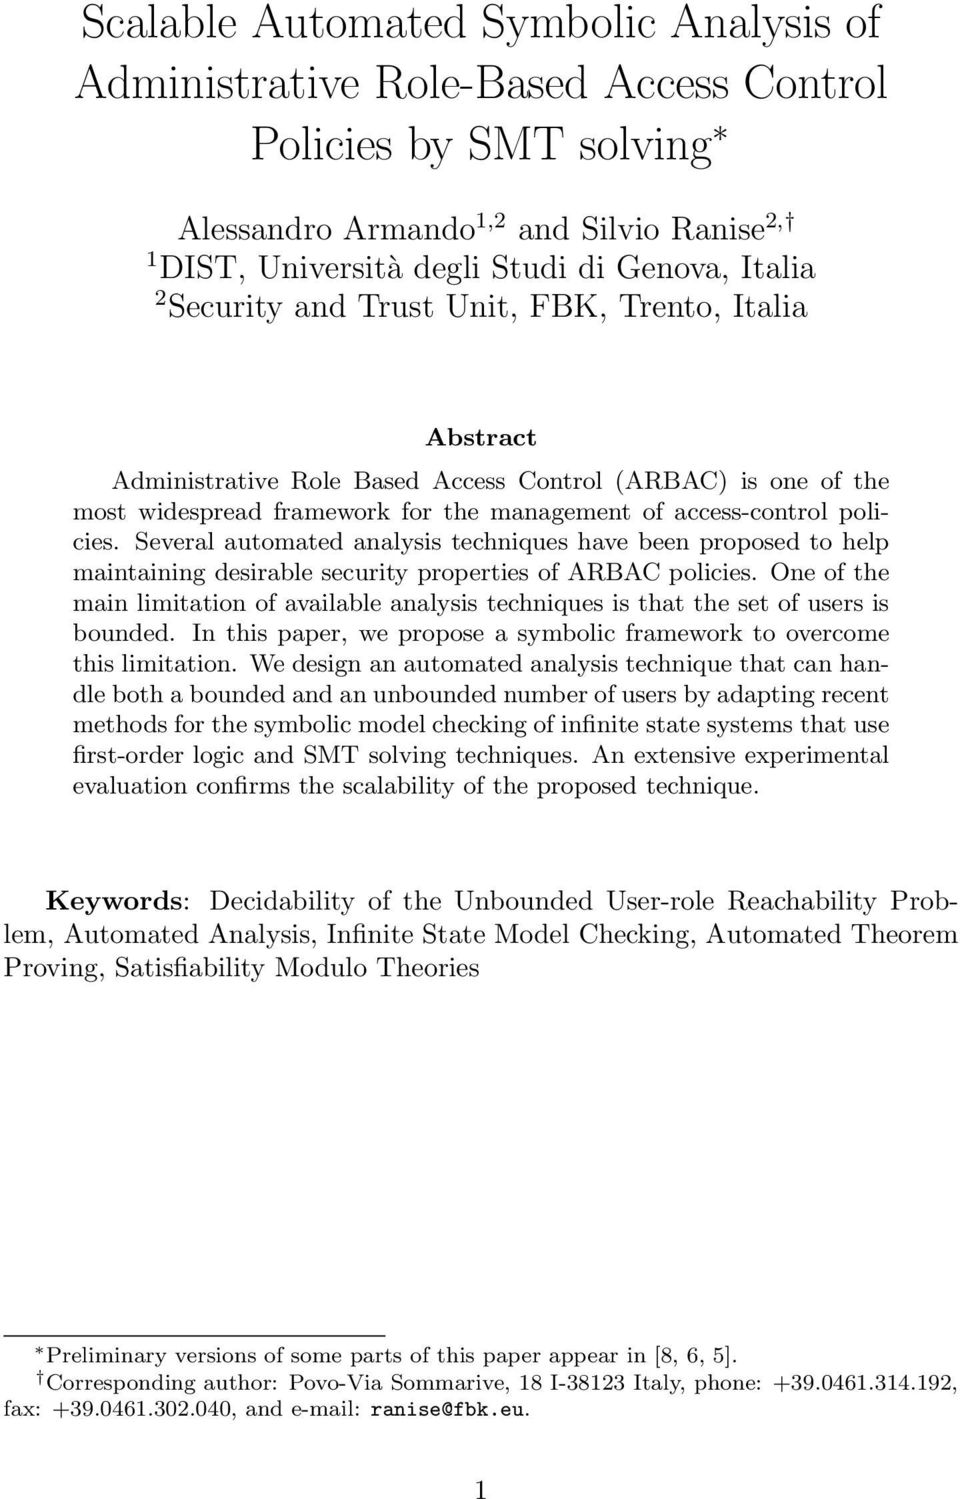 Several automated analysis techniques have been proposed to help maintaining desirable security properties of ARBAC policies.